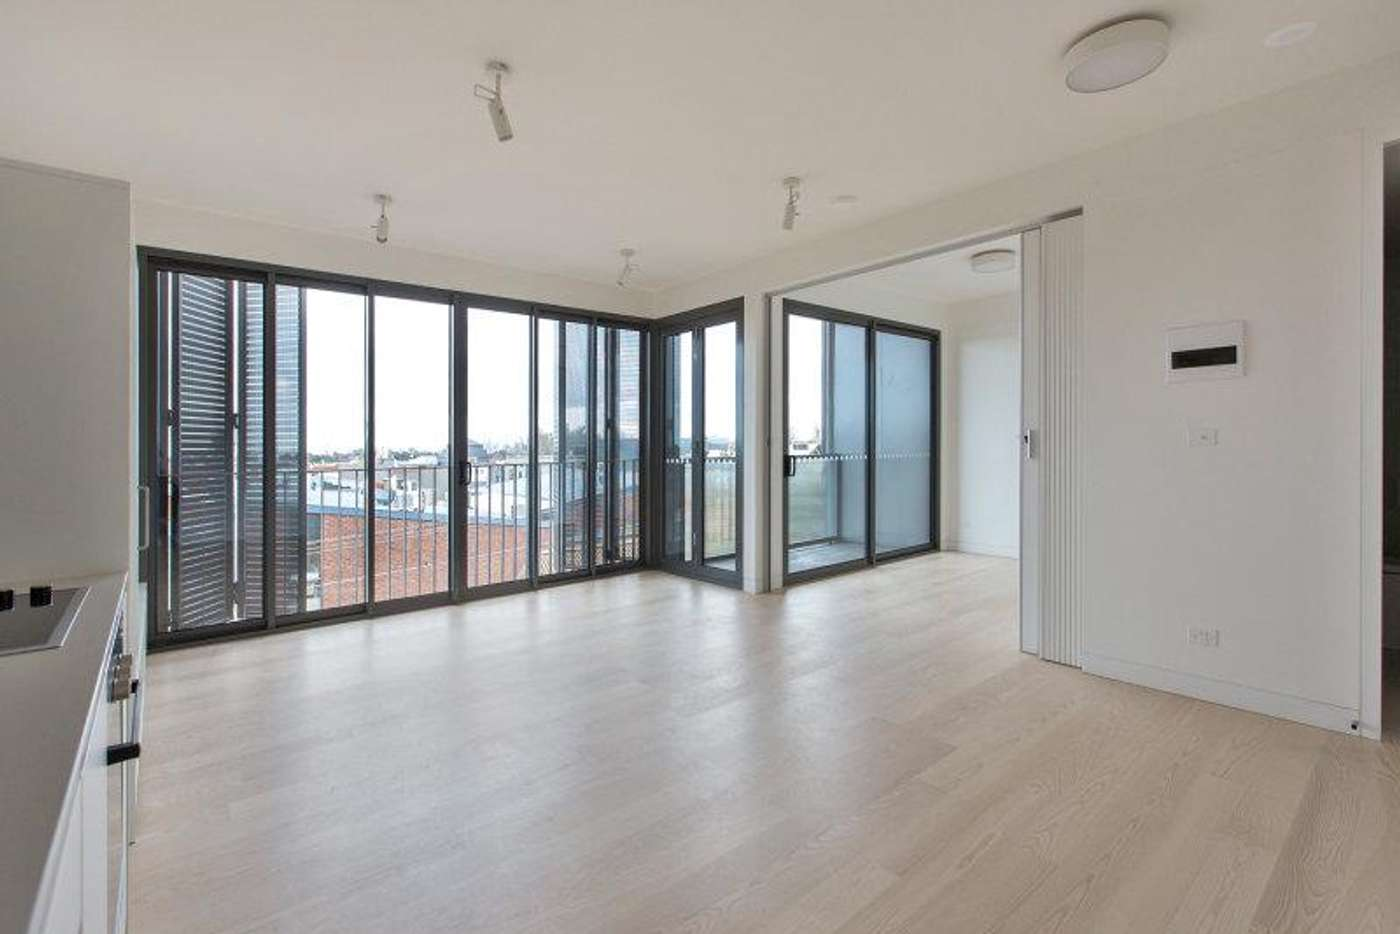 Main view of Homely apartment listing, 204/40 Seymour Avenue, Armadale VIC 3143